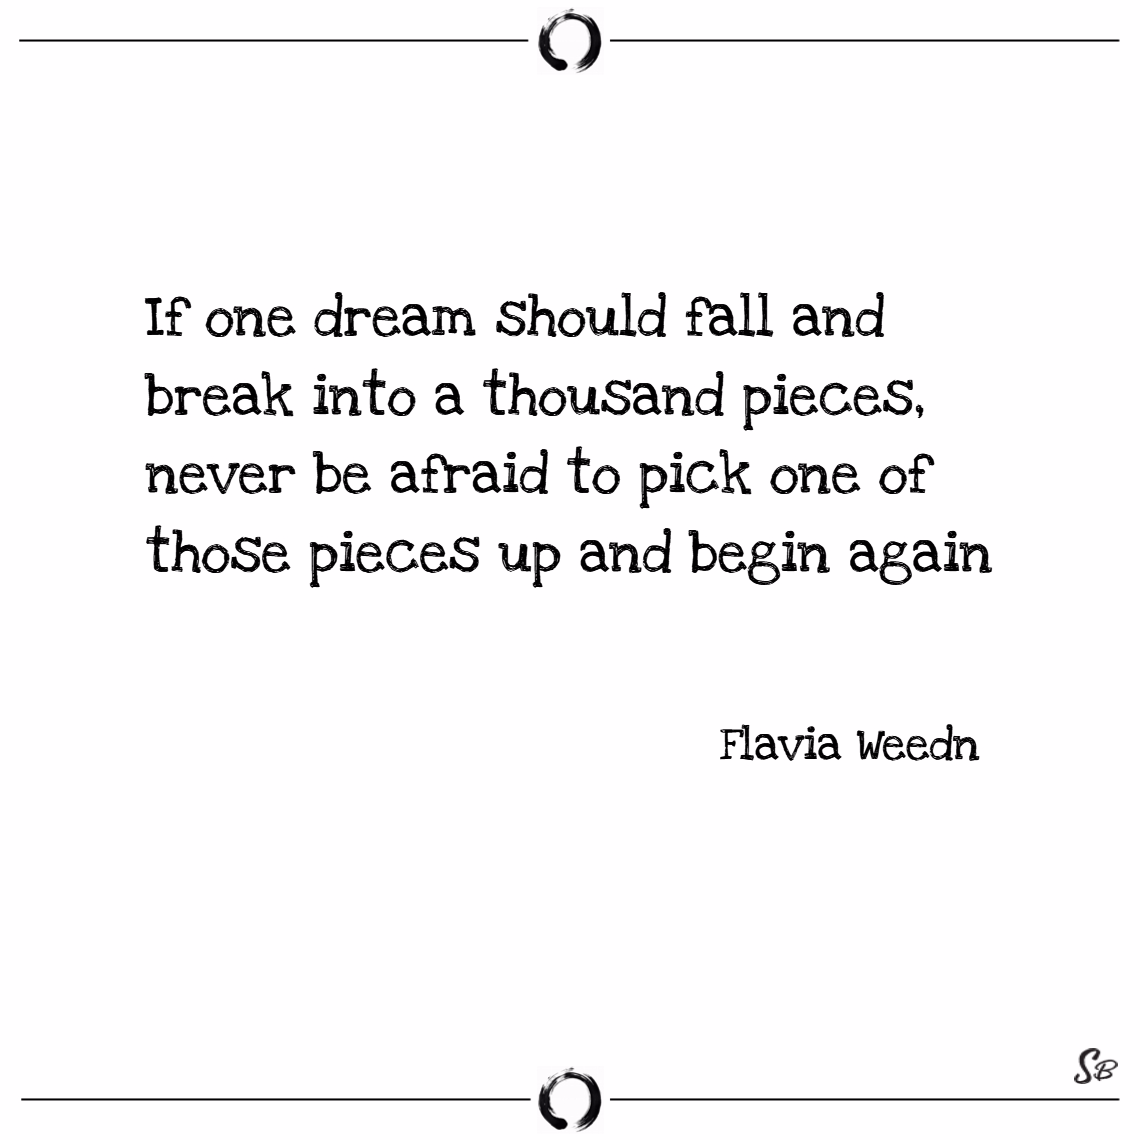 If one dream should fall and break into a thousand pieces, never be afraid to pick one of those pieces up and begin again. – flavia weedn